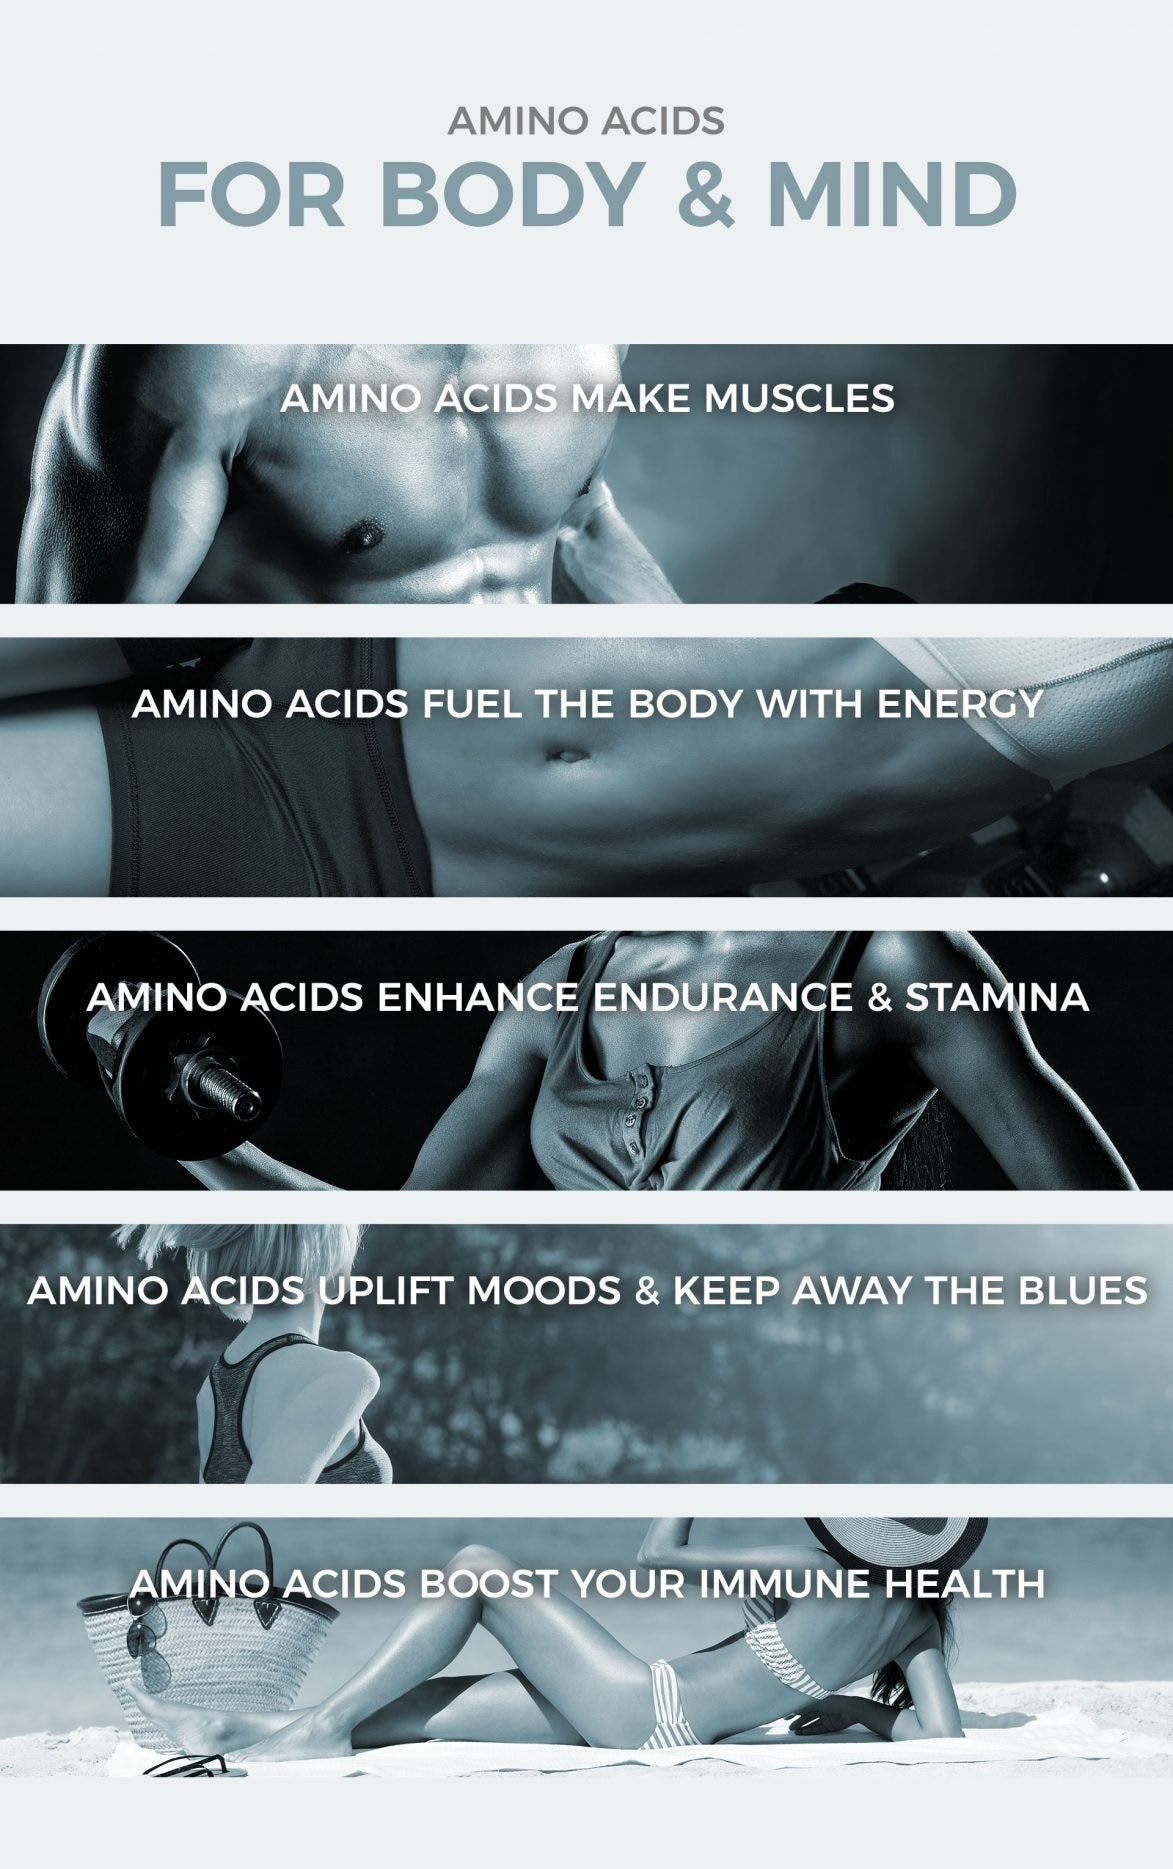 Amino acid benefits for body and mind